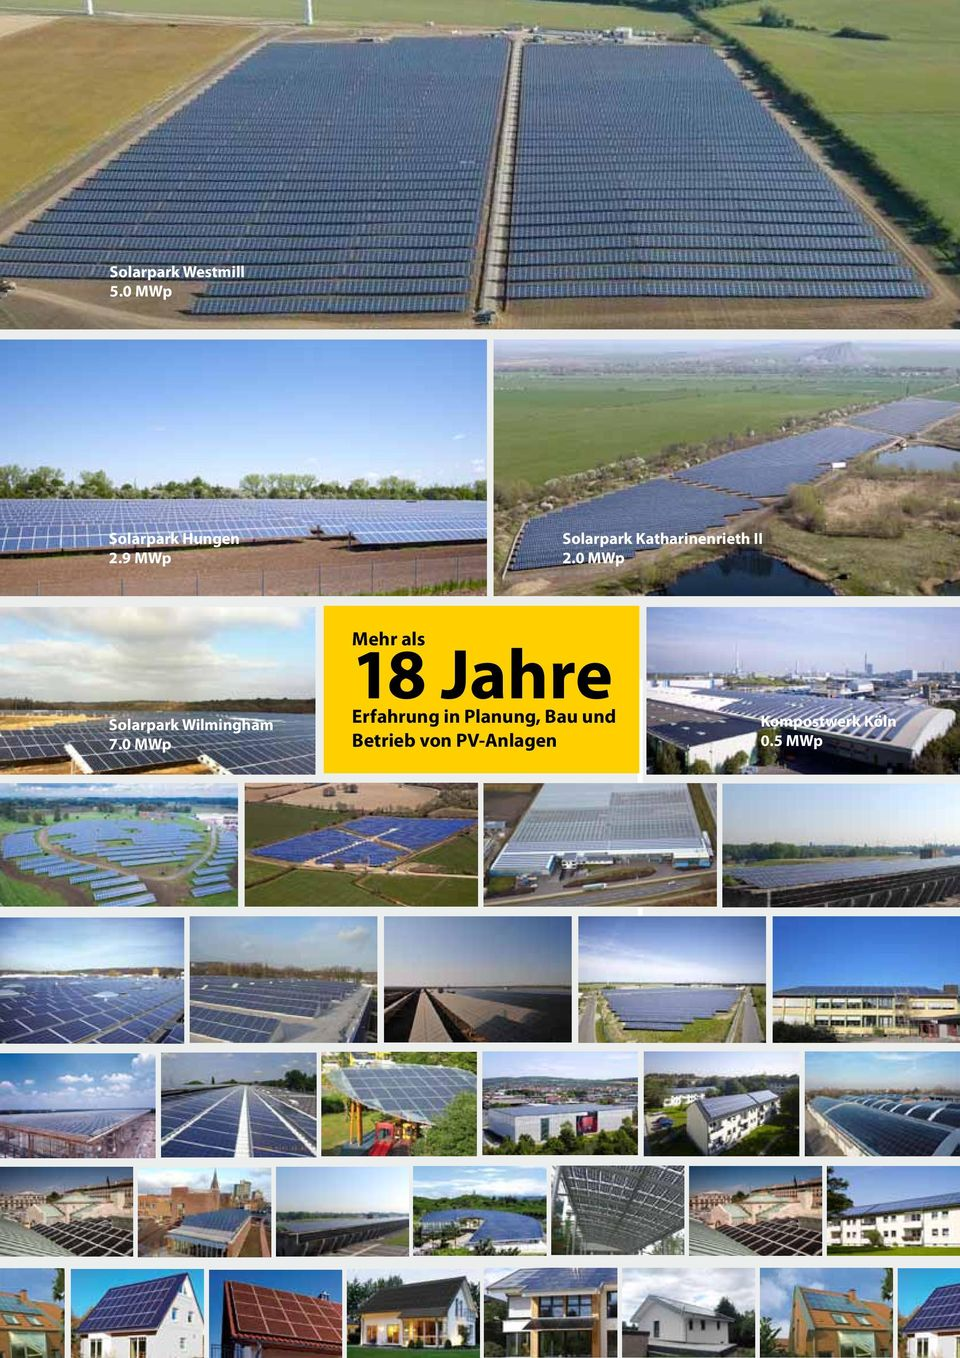 0 MWp Solarpark Wilmigham 7.